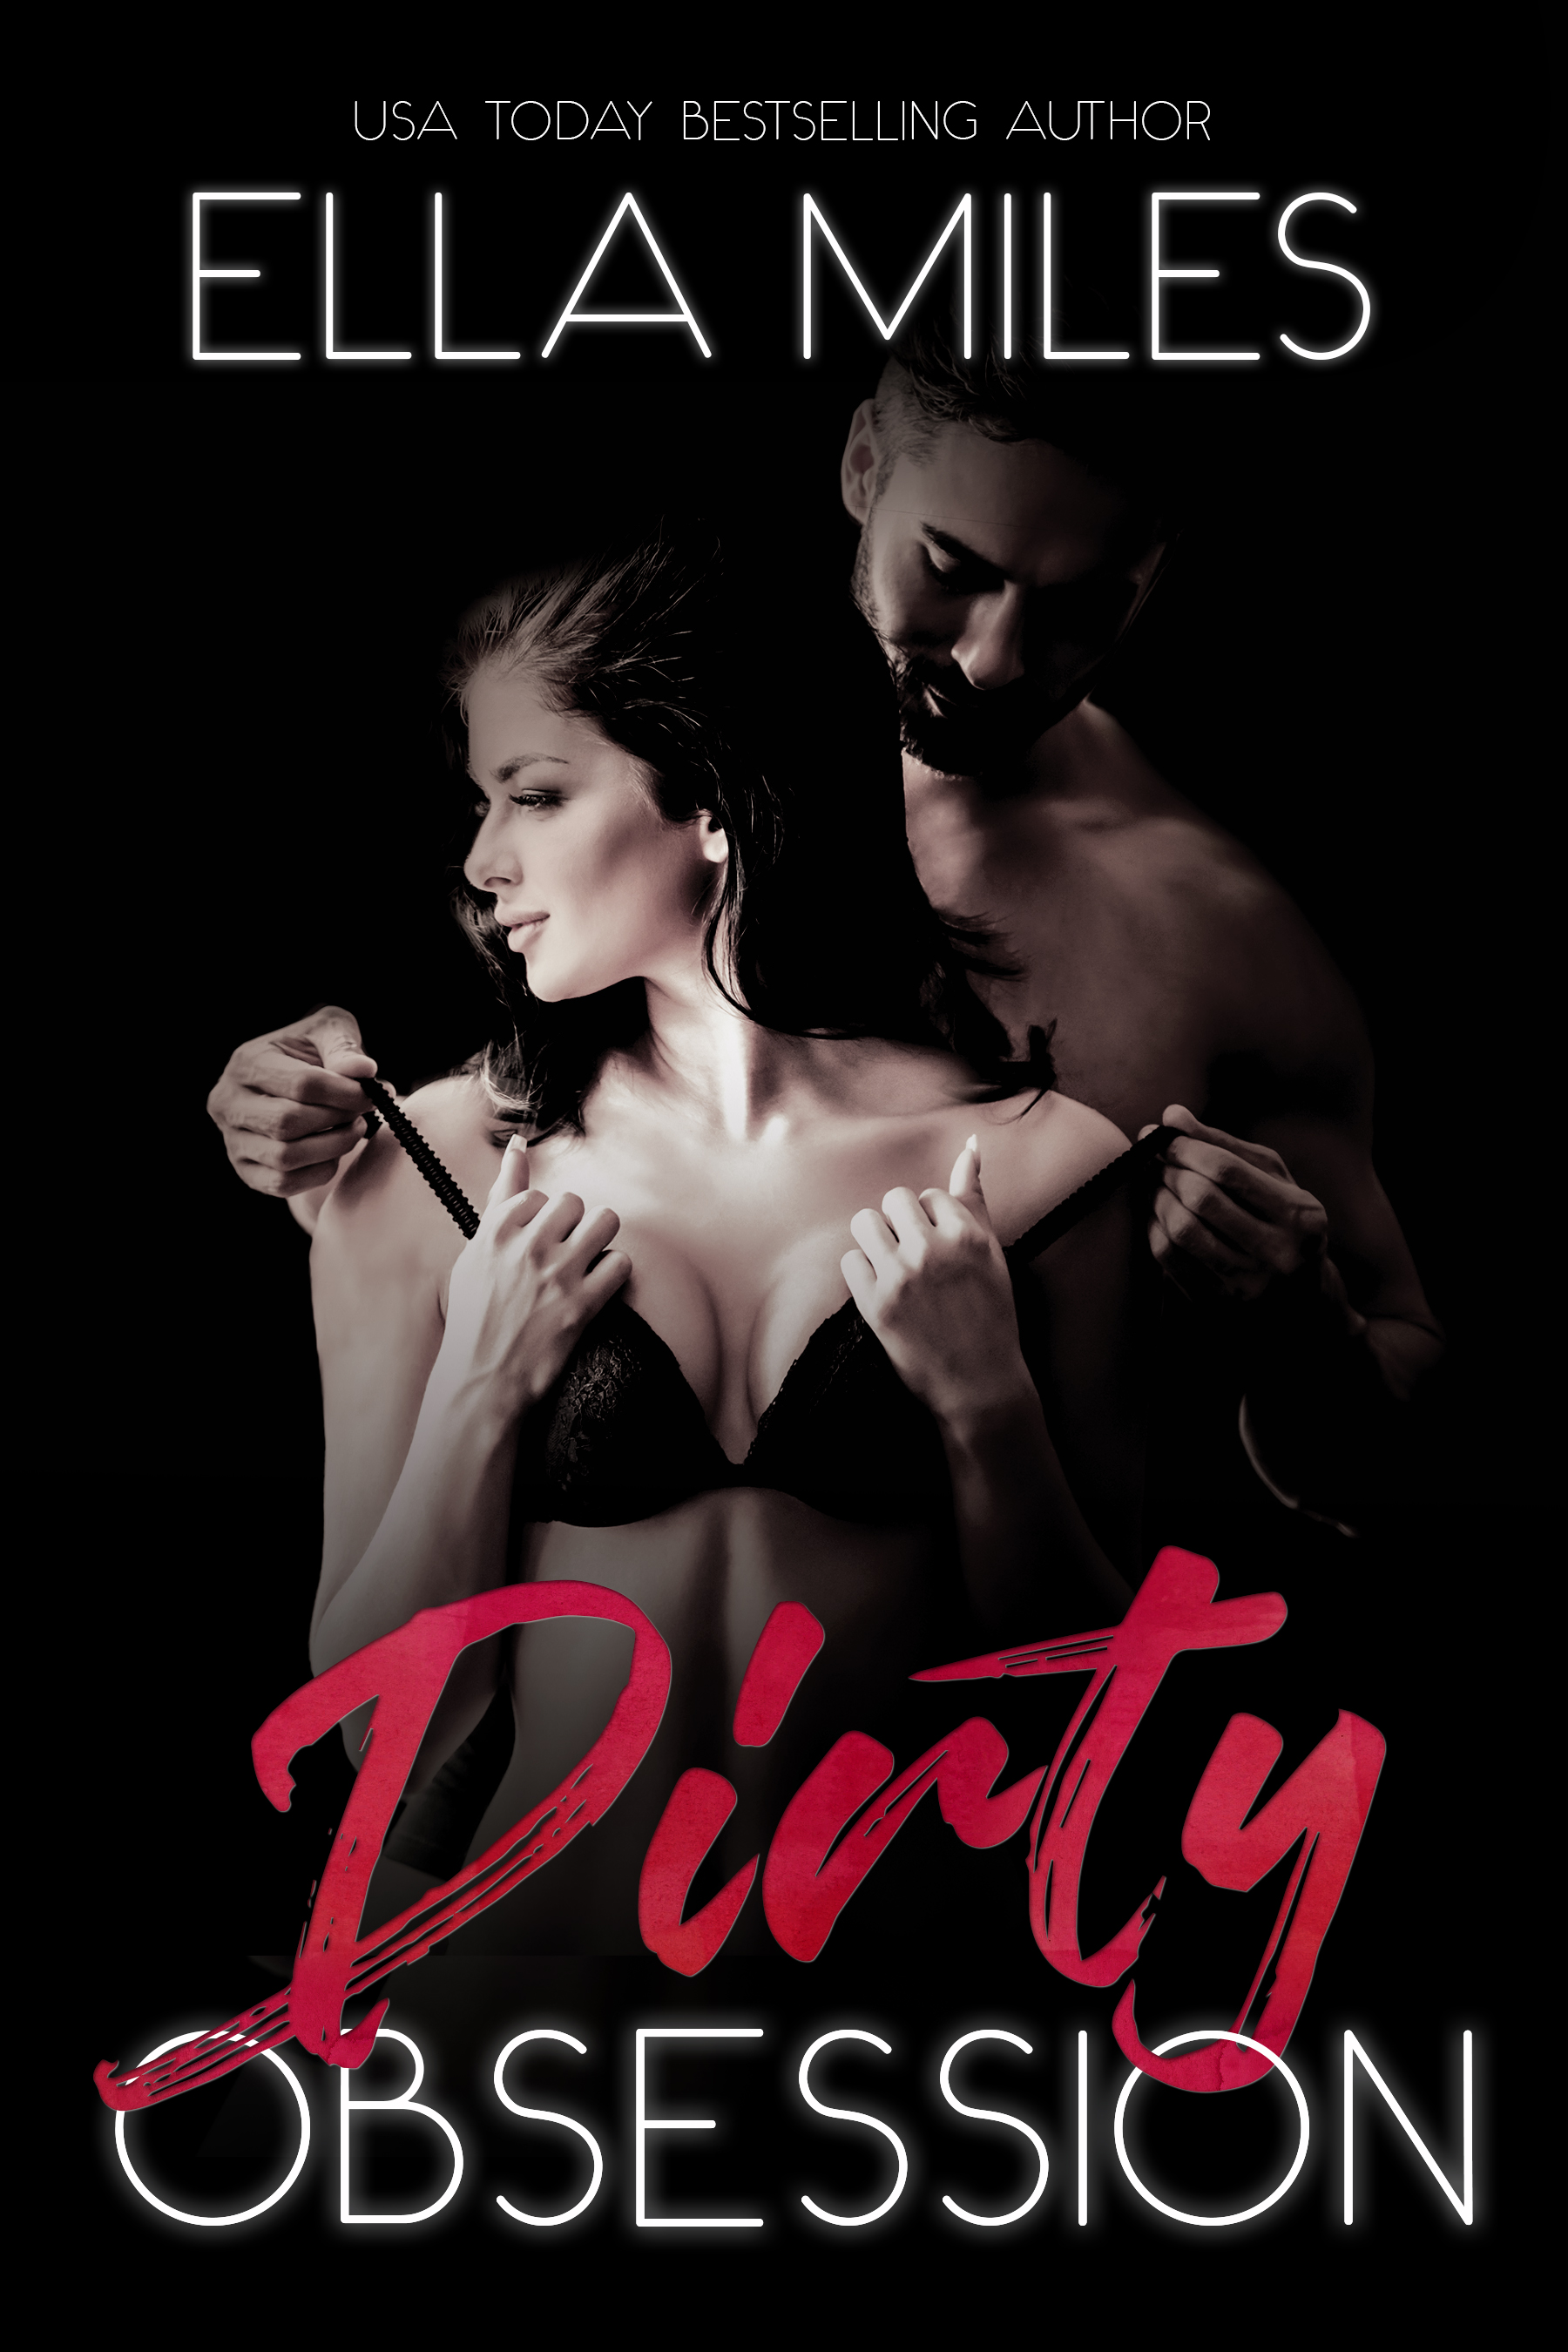 Dirty Obsession - Arlo Carini saved my life, only to destroy it.When I first met him, he was the wealthy, powerful, sexy stranger giving me and a dozen other art history students a tour of his mansion. But he soon became my everything.My savior. My lover. My obsession.He tried to warn me. Every chance he could, he tried to get me to run far, far away. But it only made my obsession grow stronger.Until I made the worst mistake I could. And ended up trapped forever.